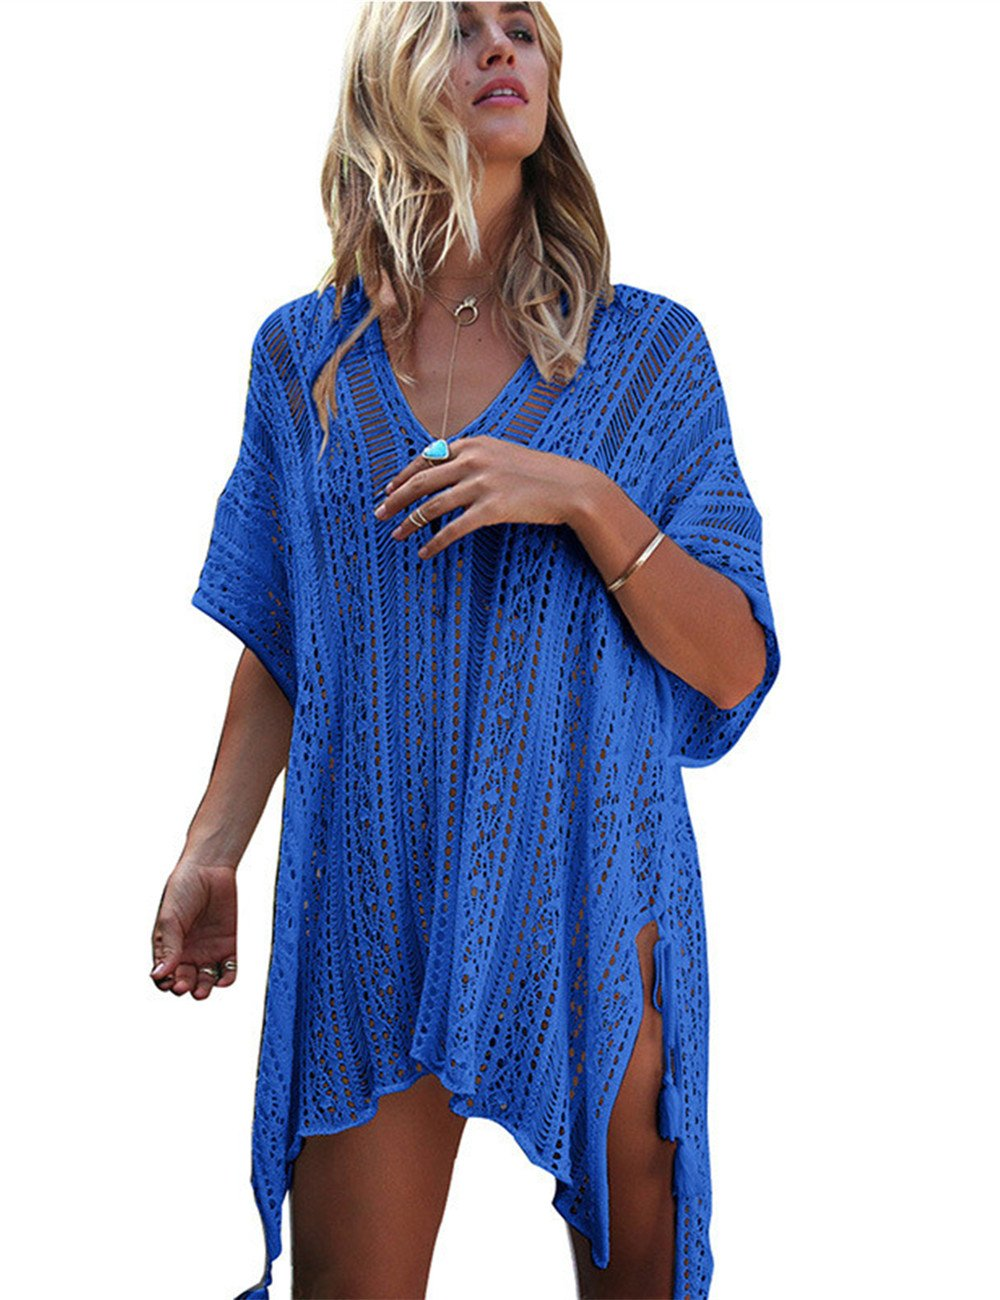 Beach Coverups for Women, Bathing Suit Cover Ups, Swimsuit Cover Up by ALPSAZON Black HNZY cover-ups 003